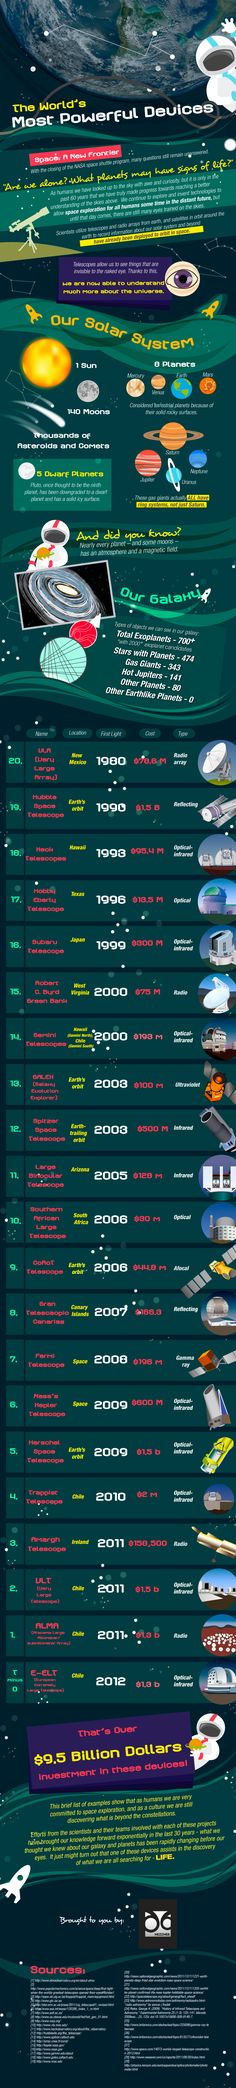 The world's most powerful telescopes. astronomy science technology - infographic